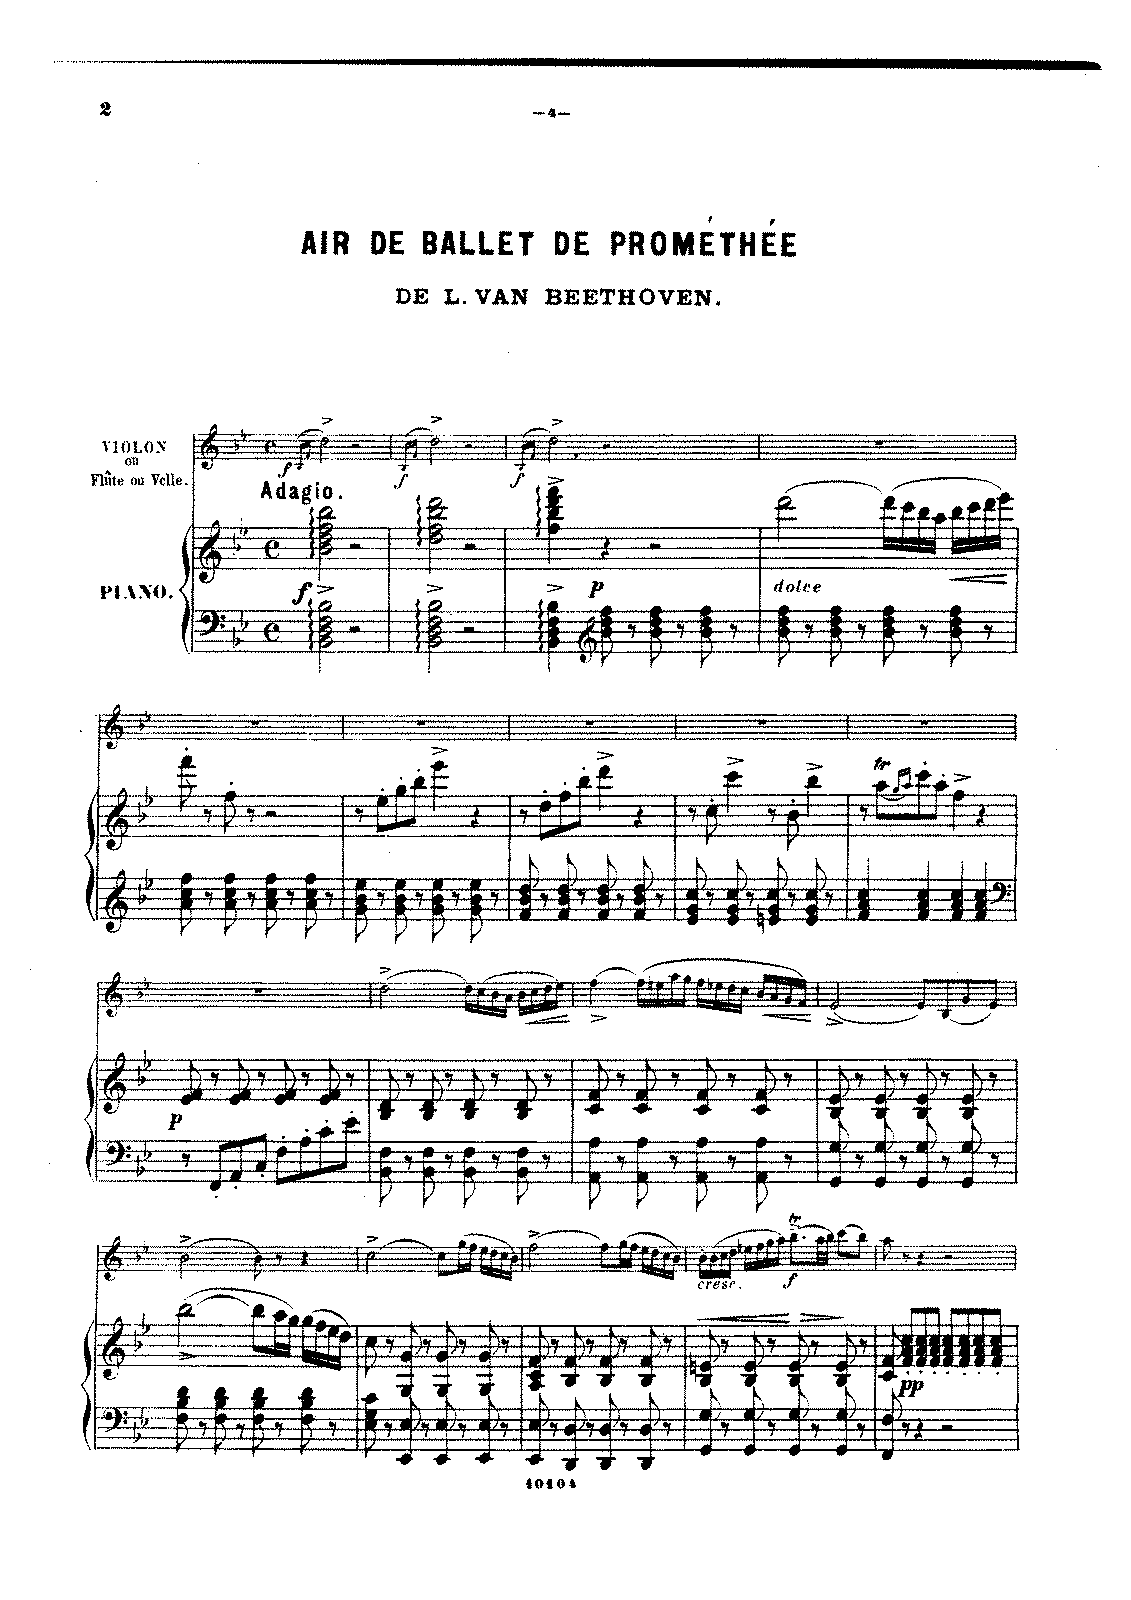 PMLP03070-Beethoven - Air De Ballet de Promethee for Cello and Piano score.pdf